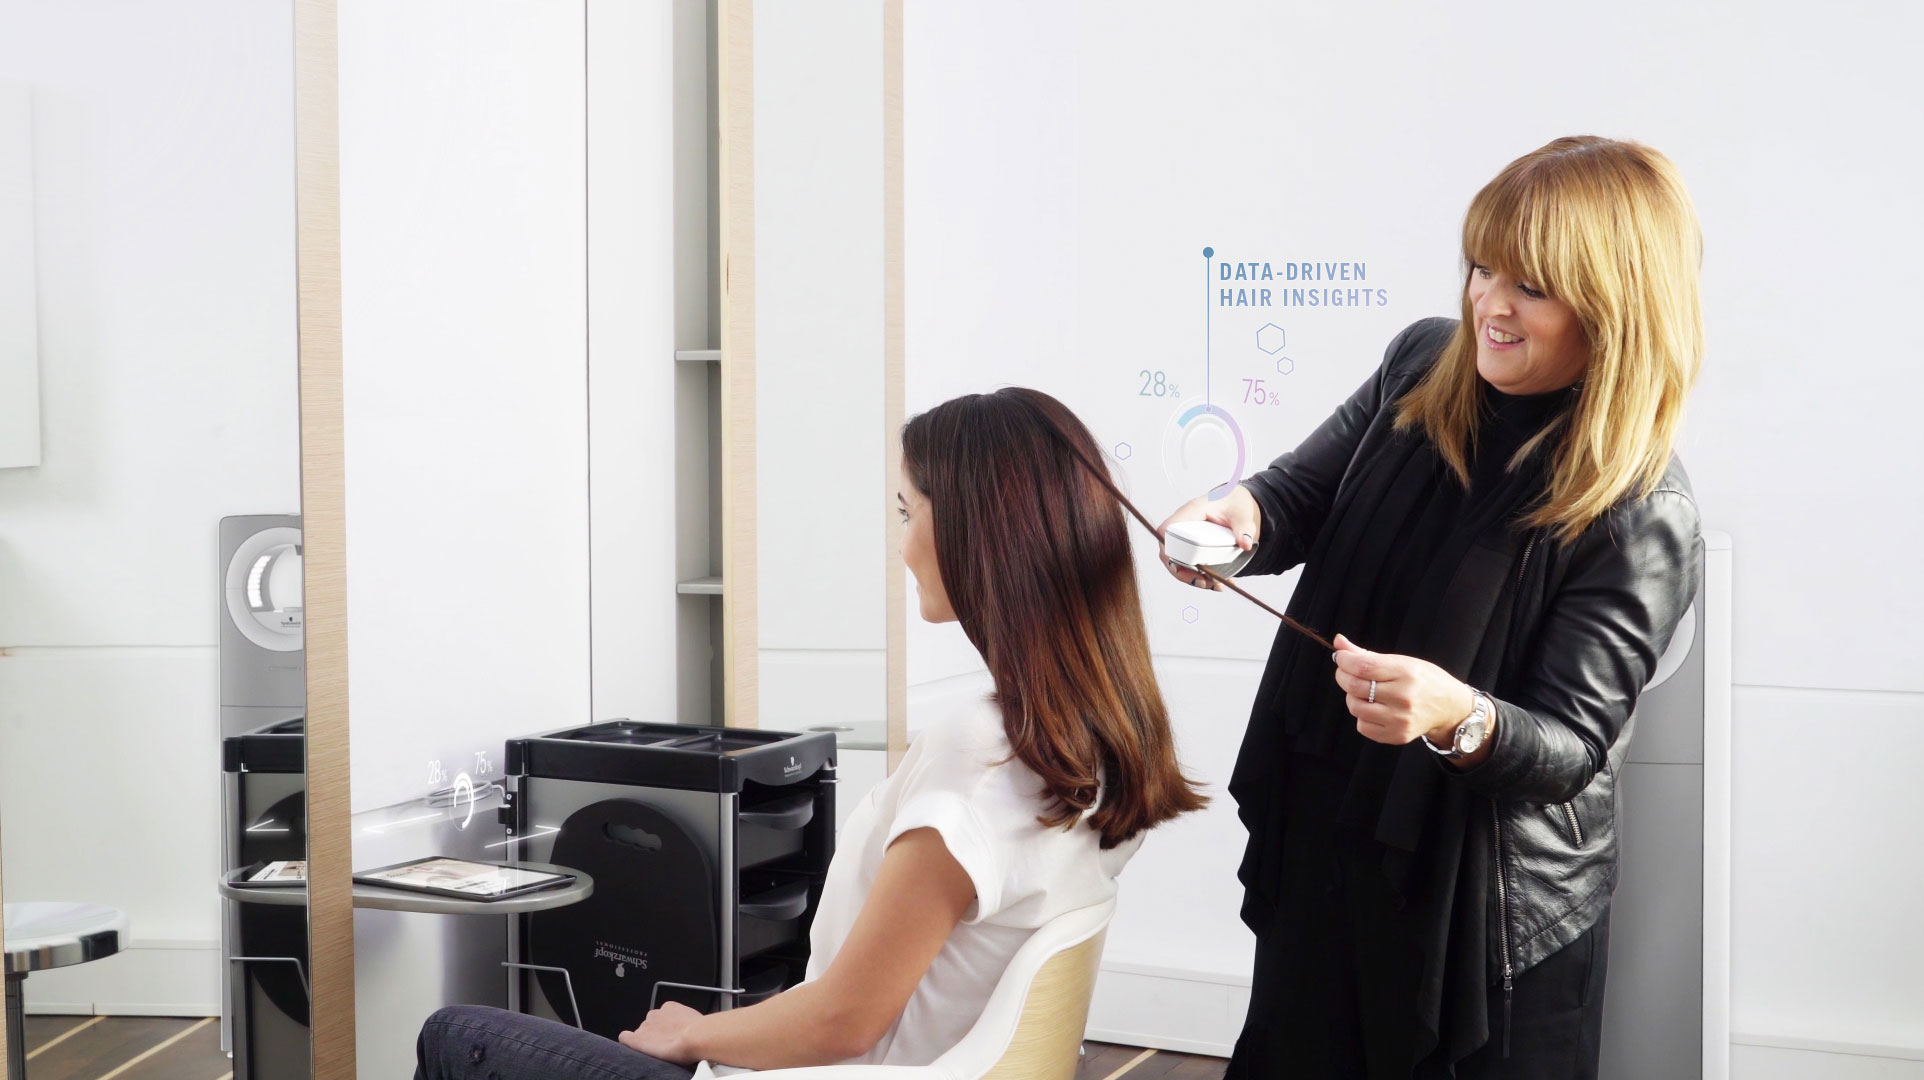 A hairstylist uses the SalonLab analyzer on a client's hair